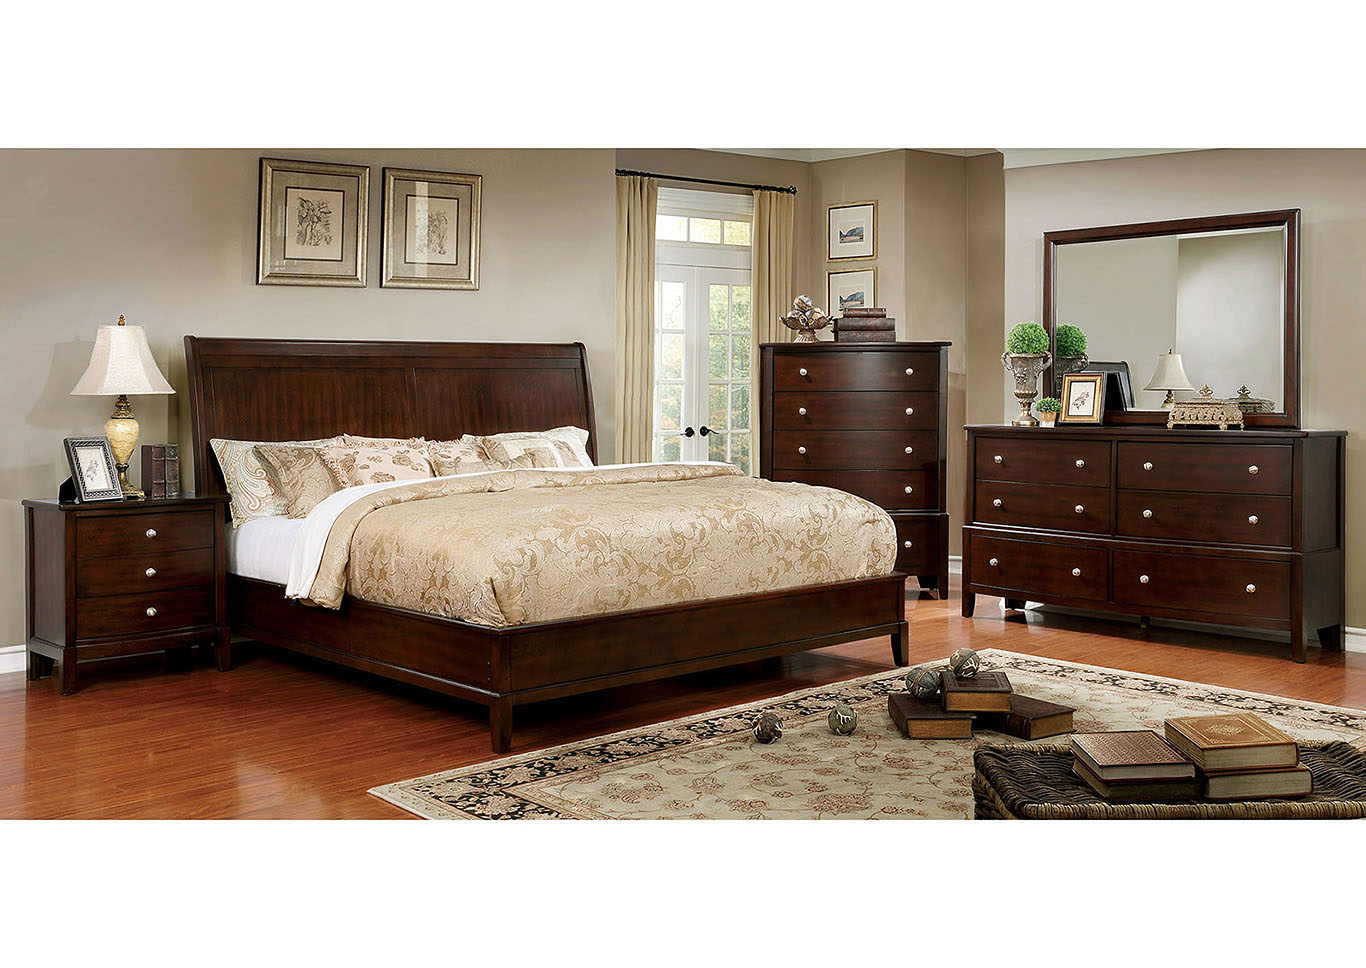 Ferrero Brown Cherry Queen Bed,Furniture of America